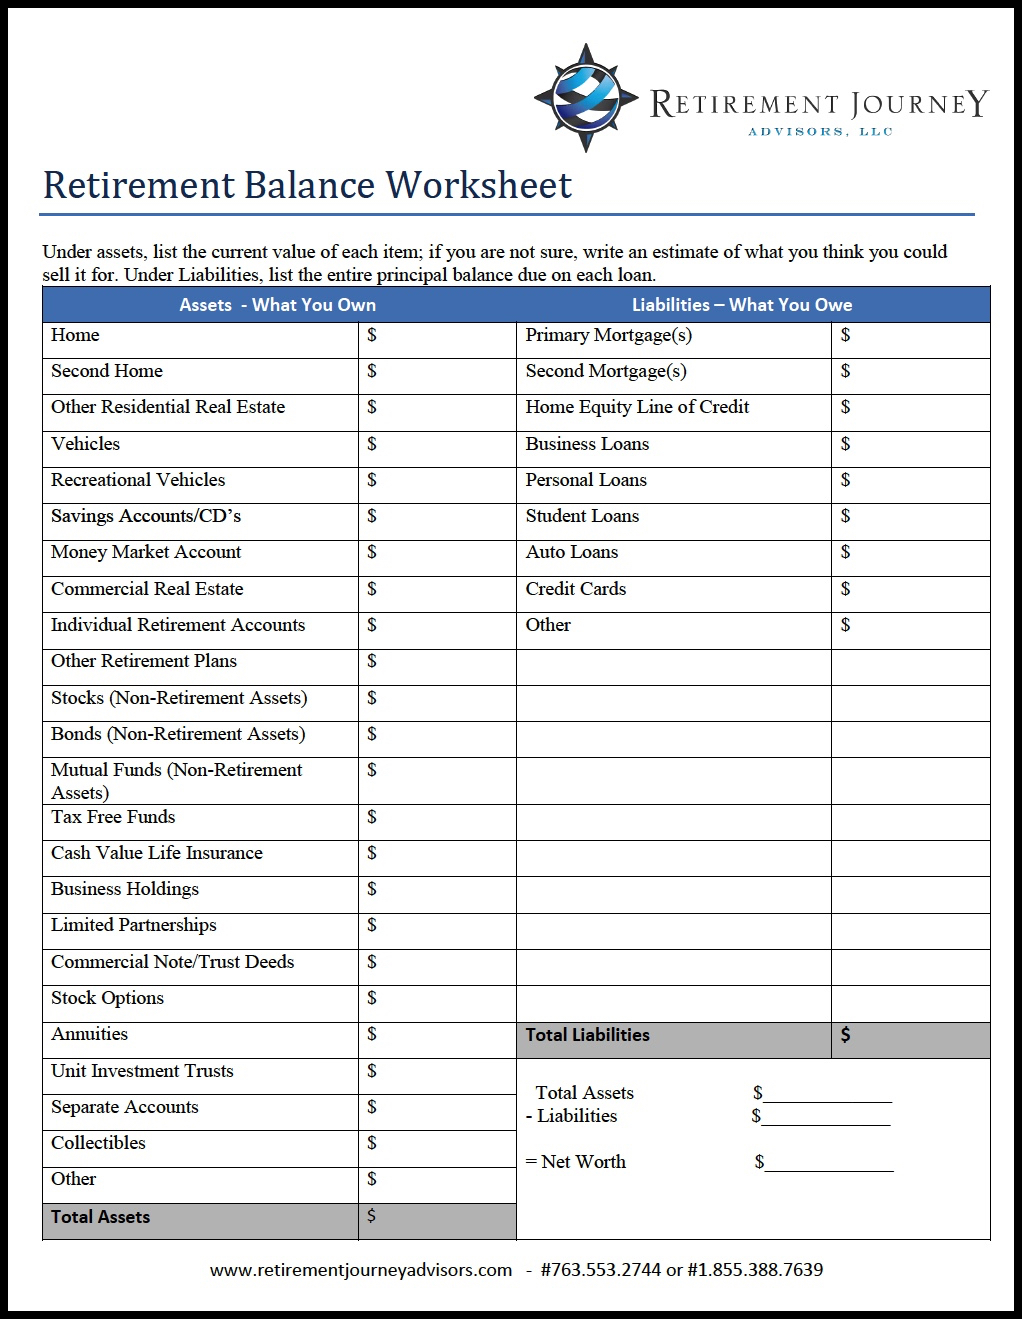 Retirement Savings Compound Interest Calculator